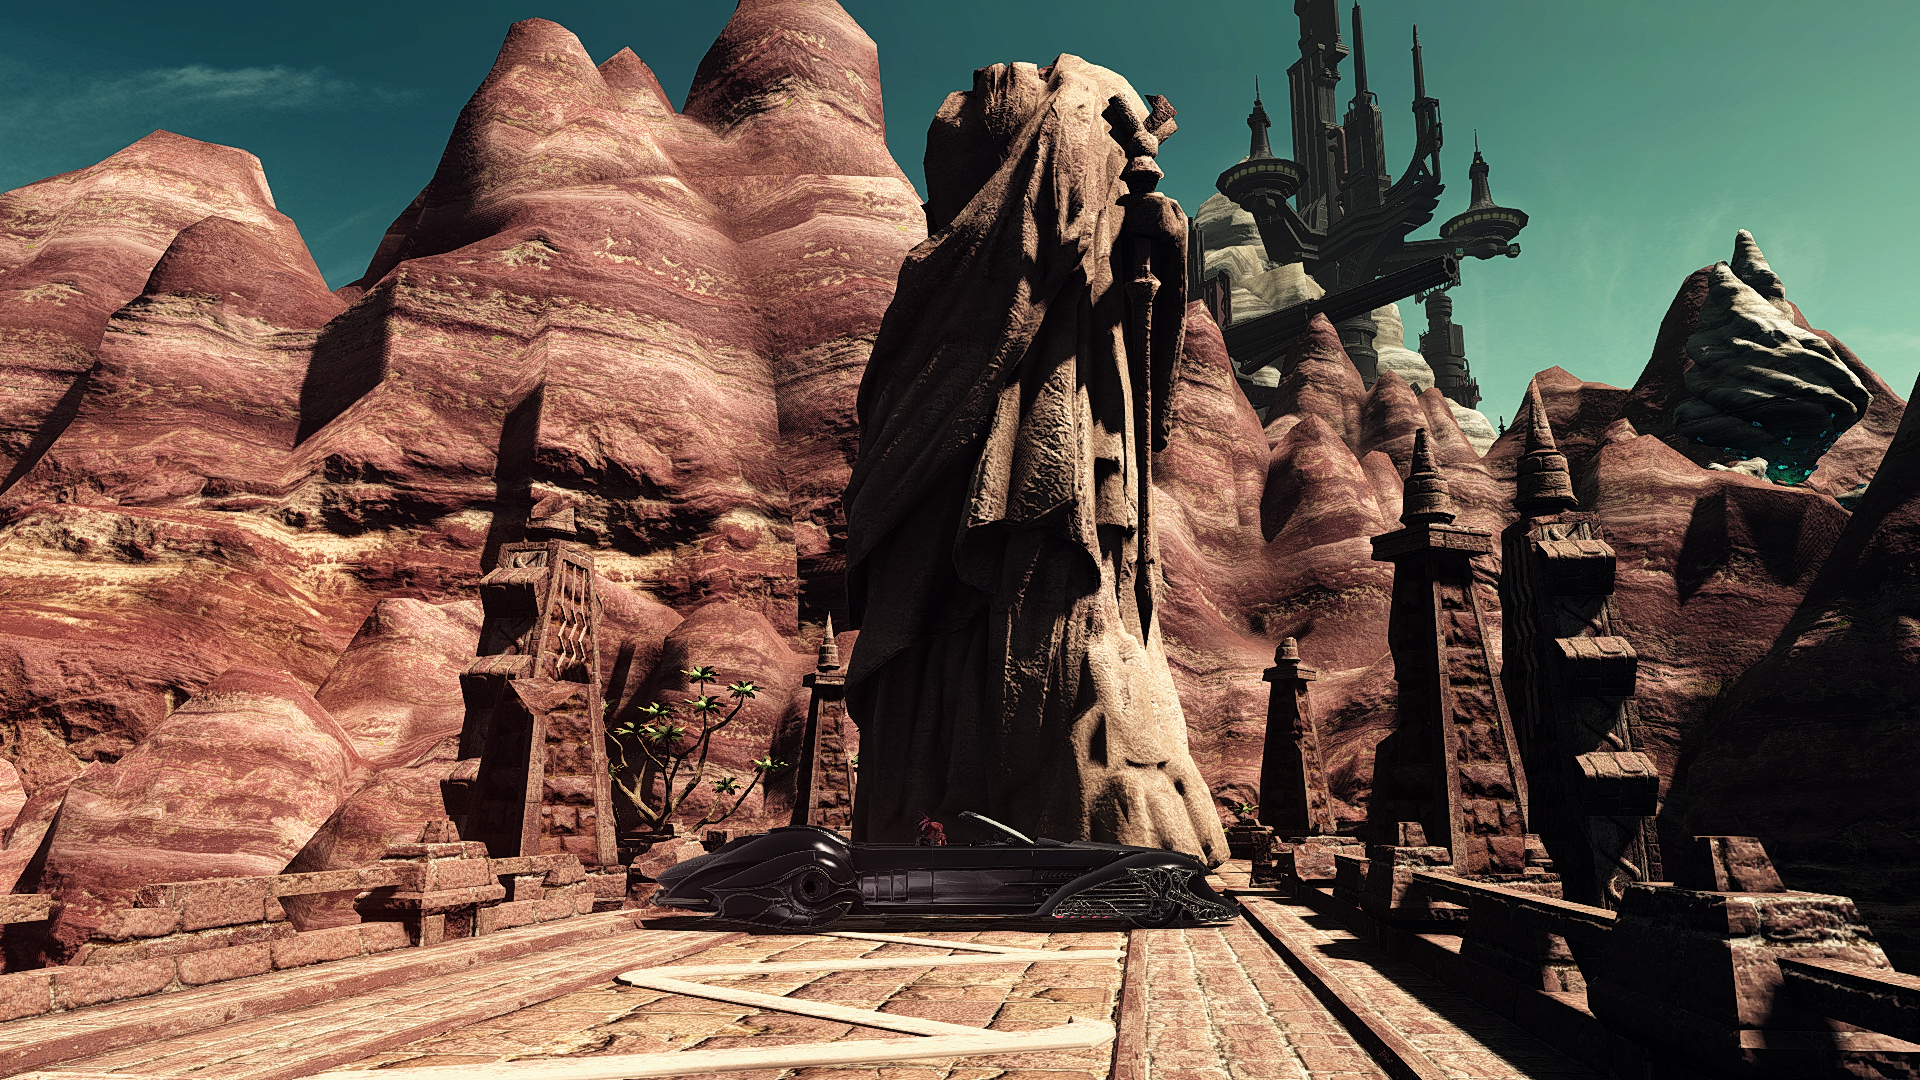 ffxiv_dx11 2019-04-24 23-06-01.png